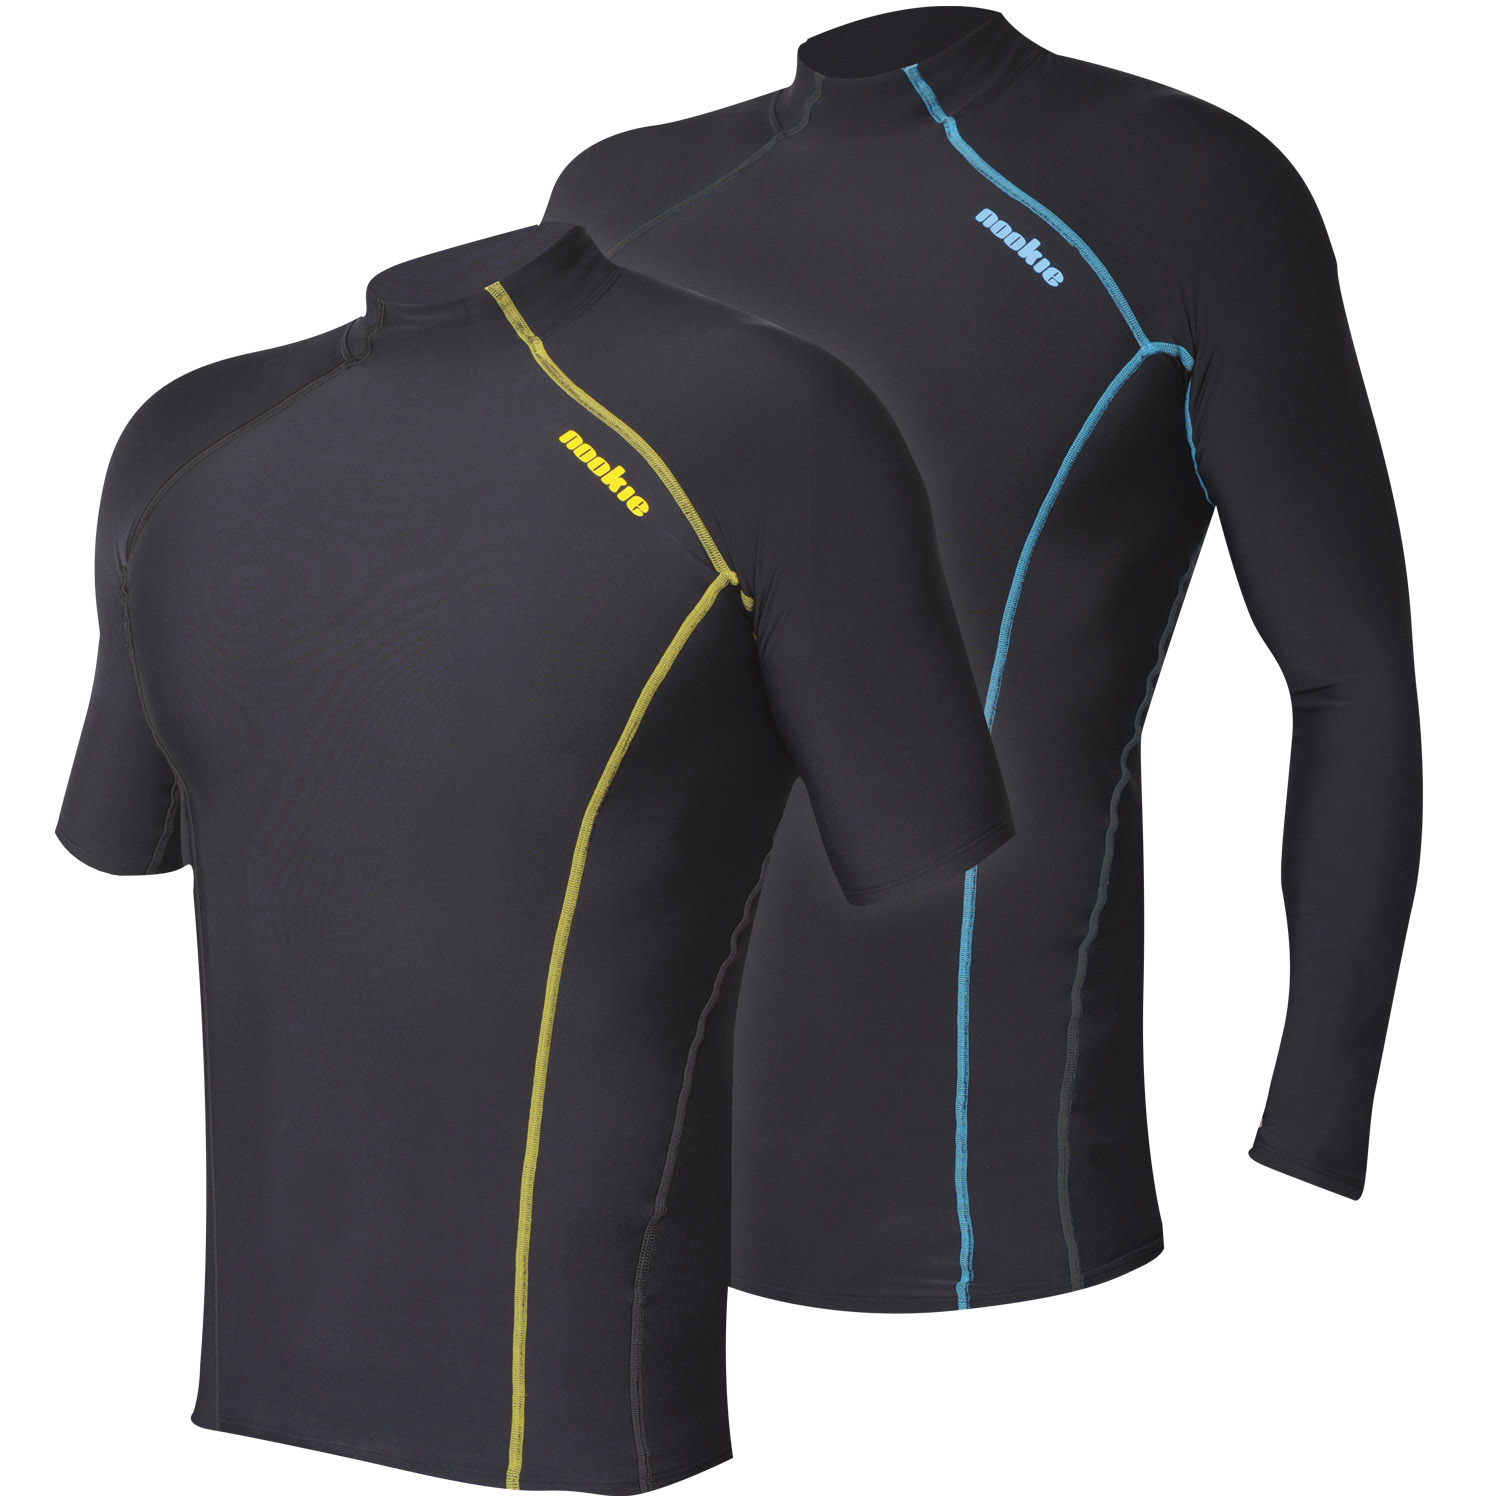 Nookie Softcore Thermal Base Layers